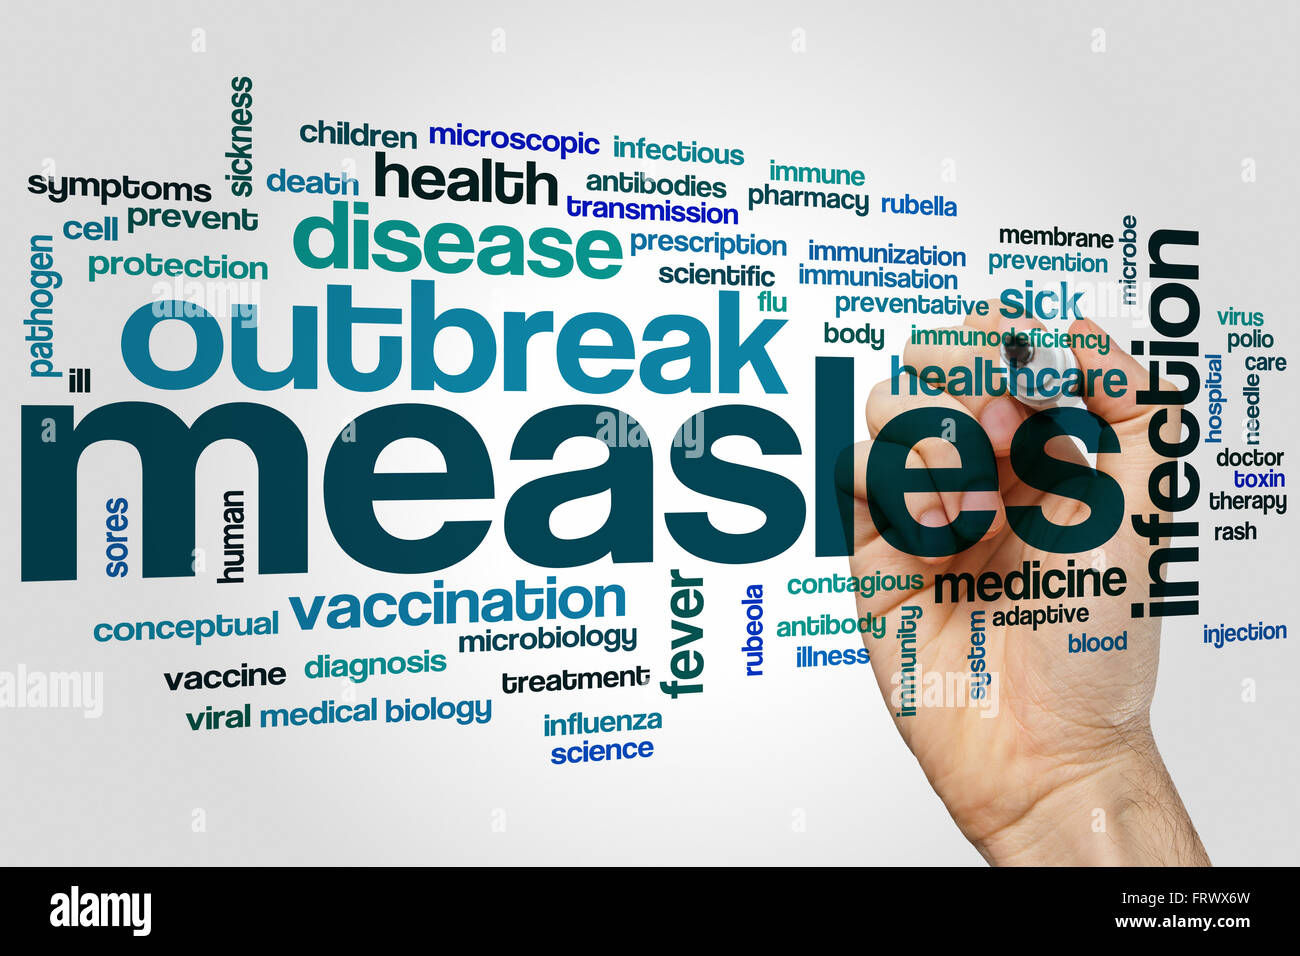 Measles word cloud concept - Stock Image